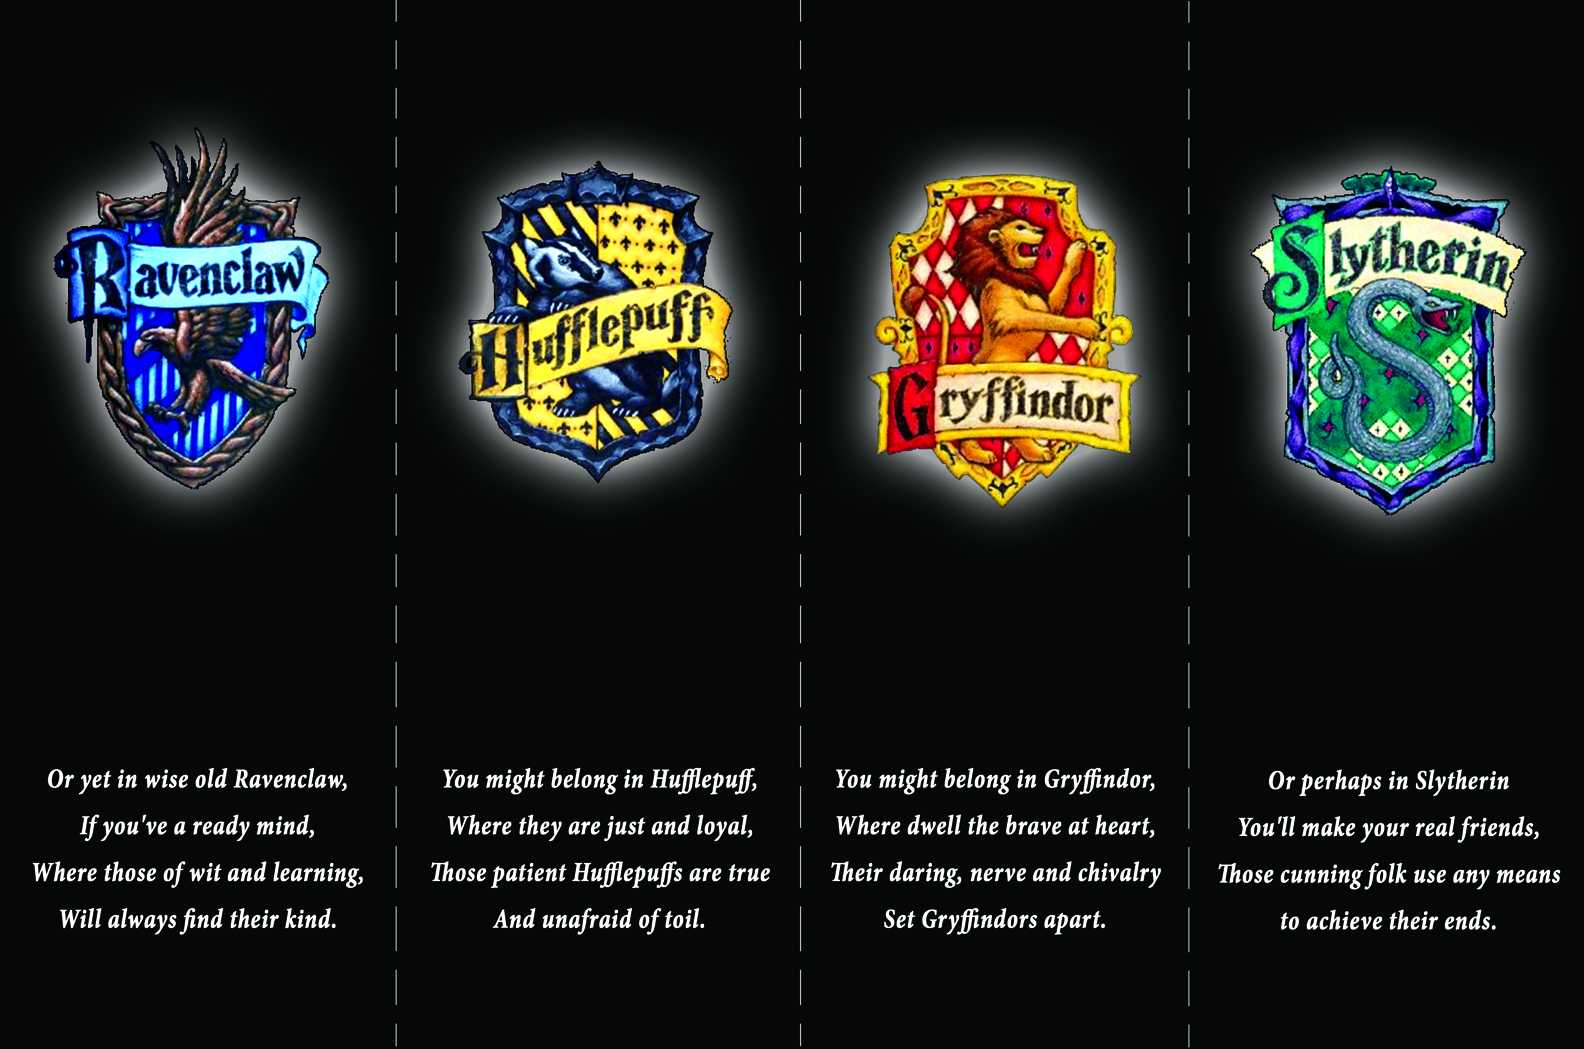 In Honor Of JK Rowling's 50th: 50 Reasons To Love Harry Potter | JK Rowling's 50th